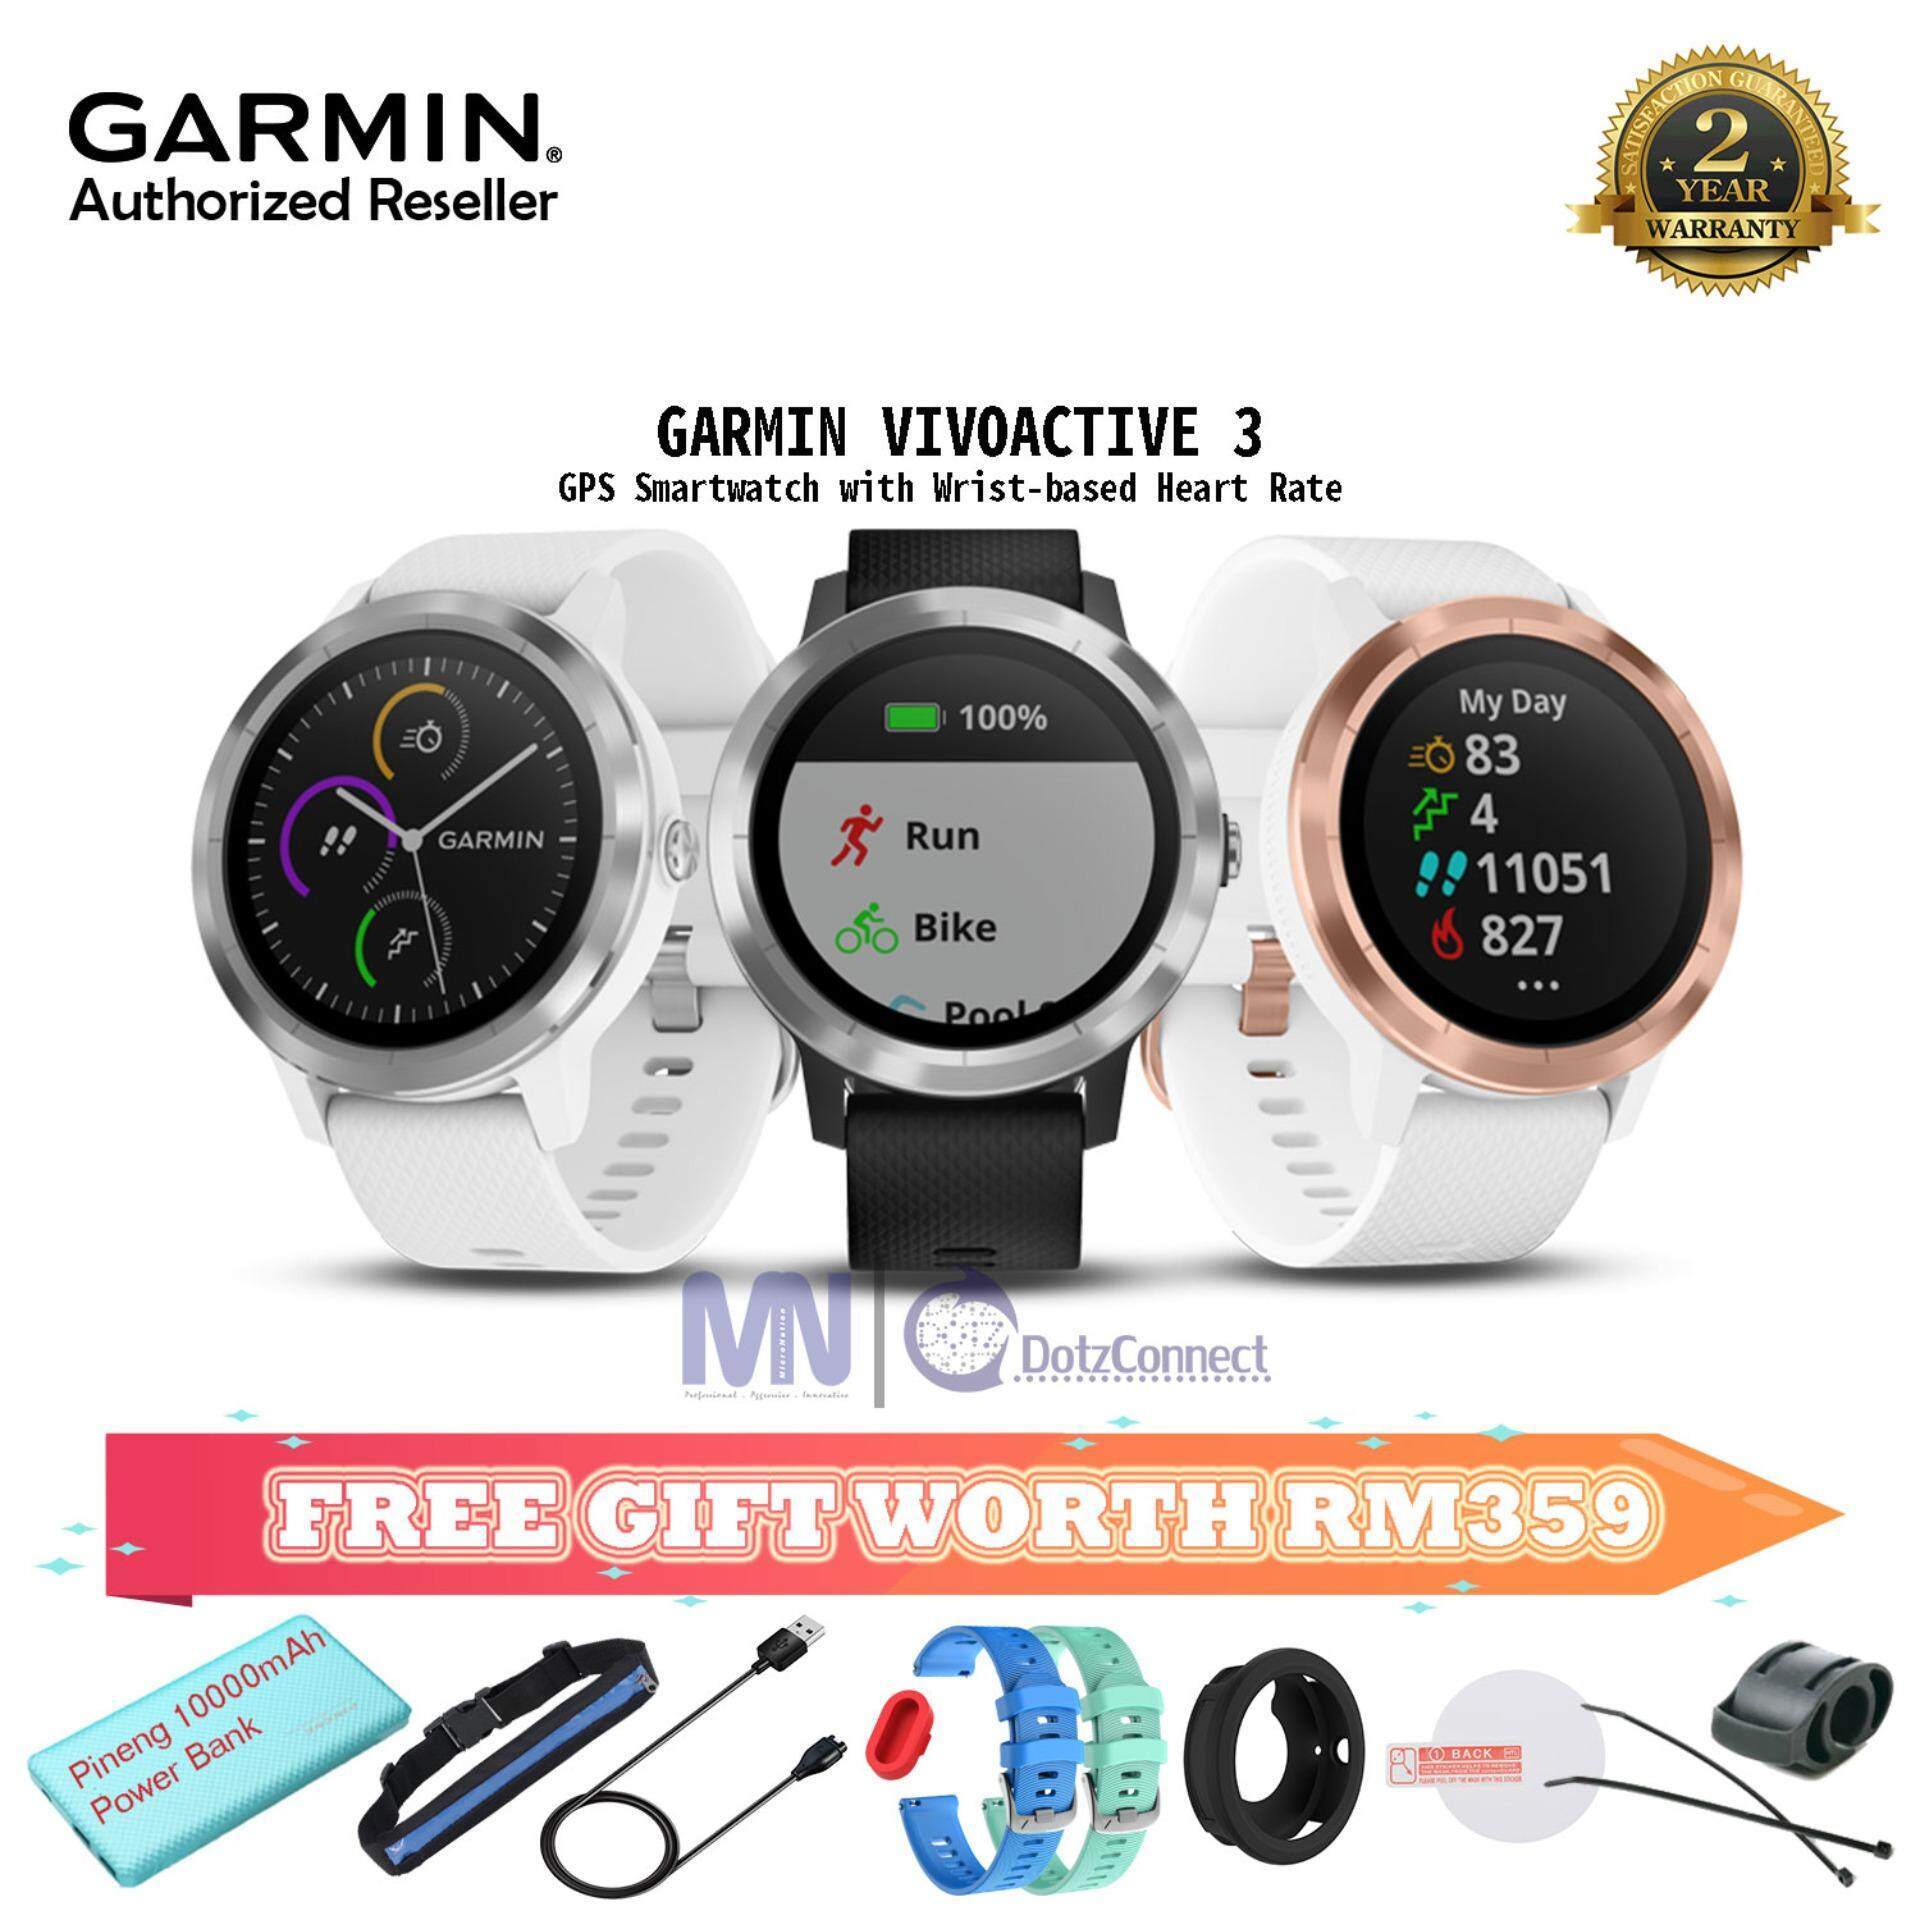 Garmin Vivoactive 3 GPS Smartwatch with Wrist-based Heart Rate (FREE screen protector, Silicone Band, Silicone Case, Bike Mount Kit, Running Belt)